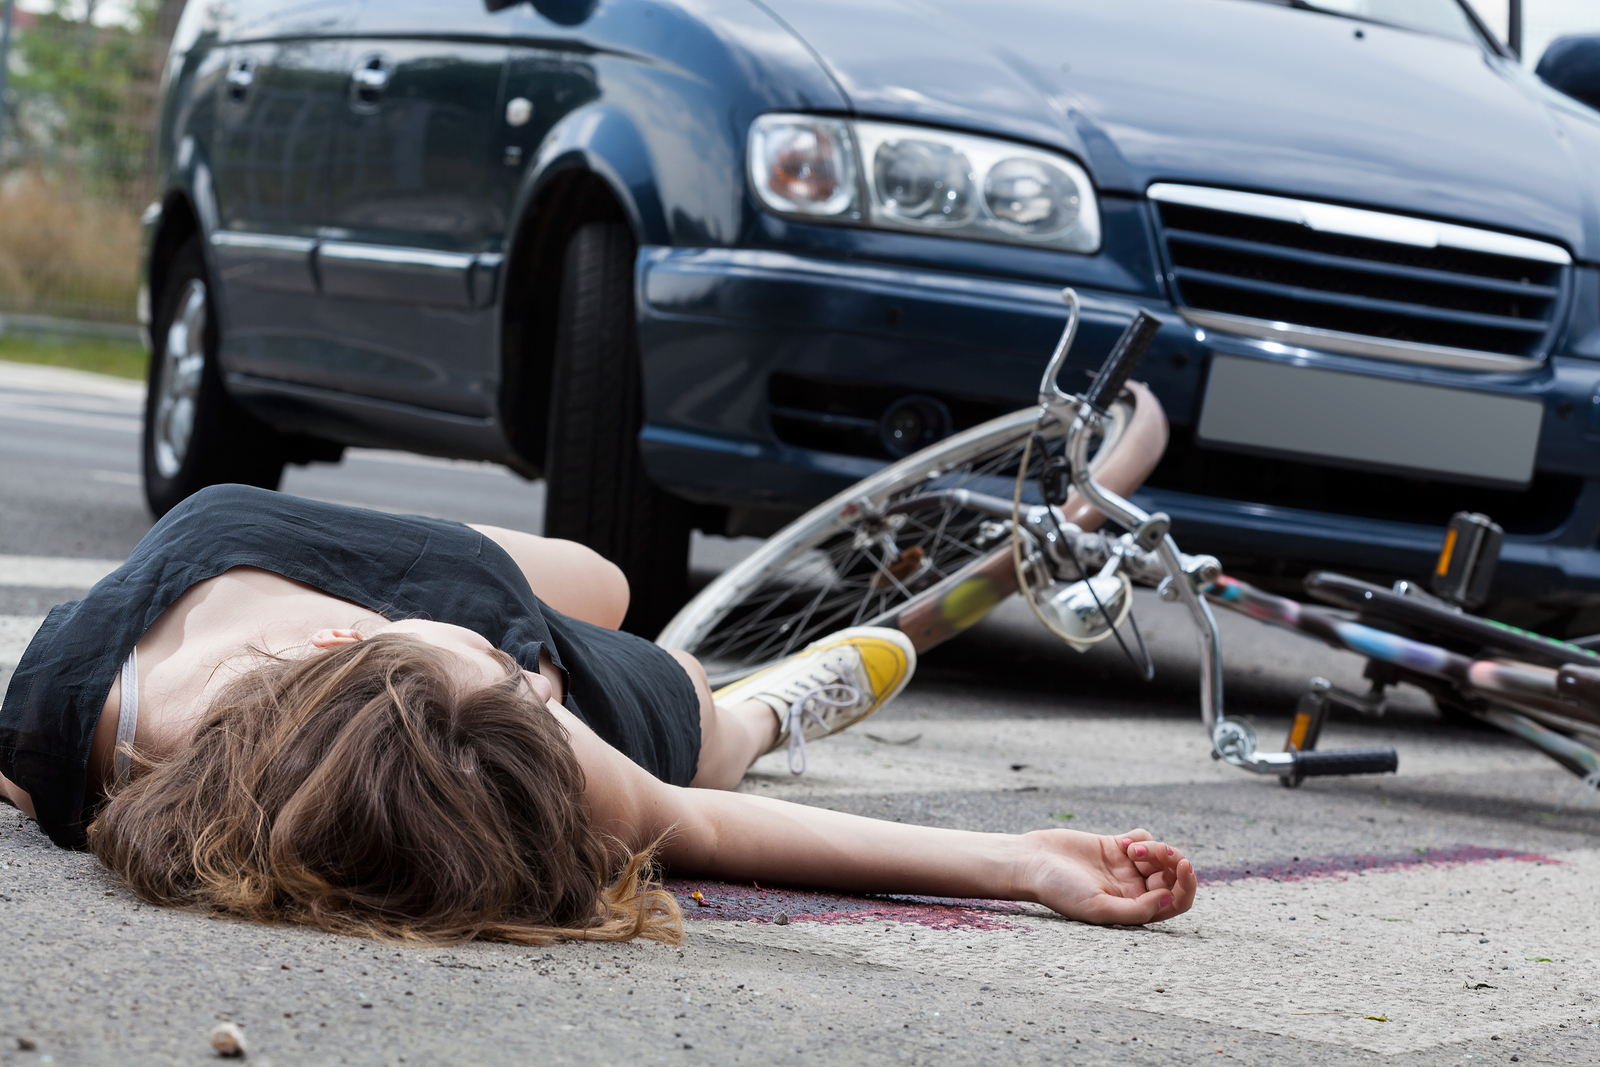 Pedestrian Accident Statistics In Charleston, WV